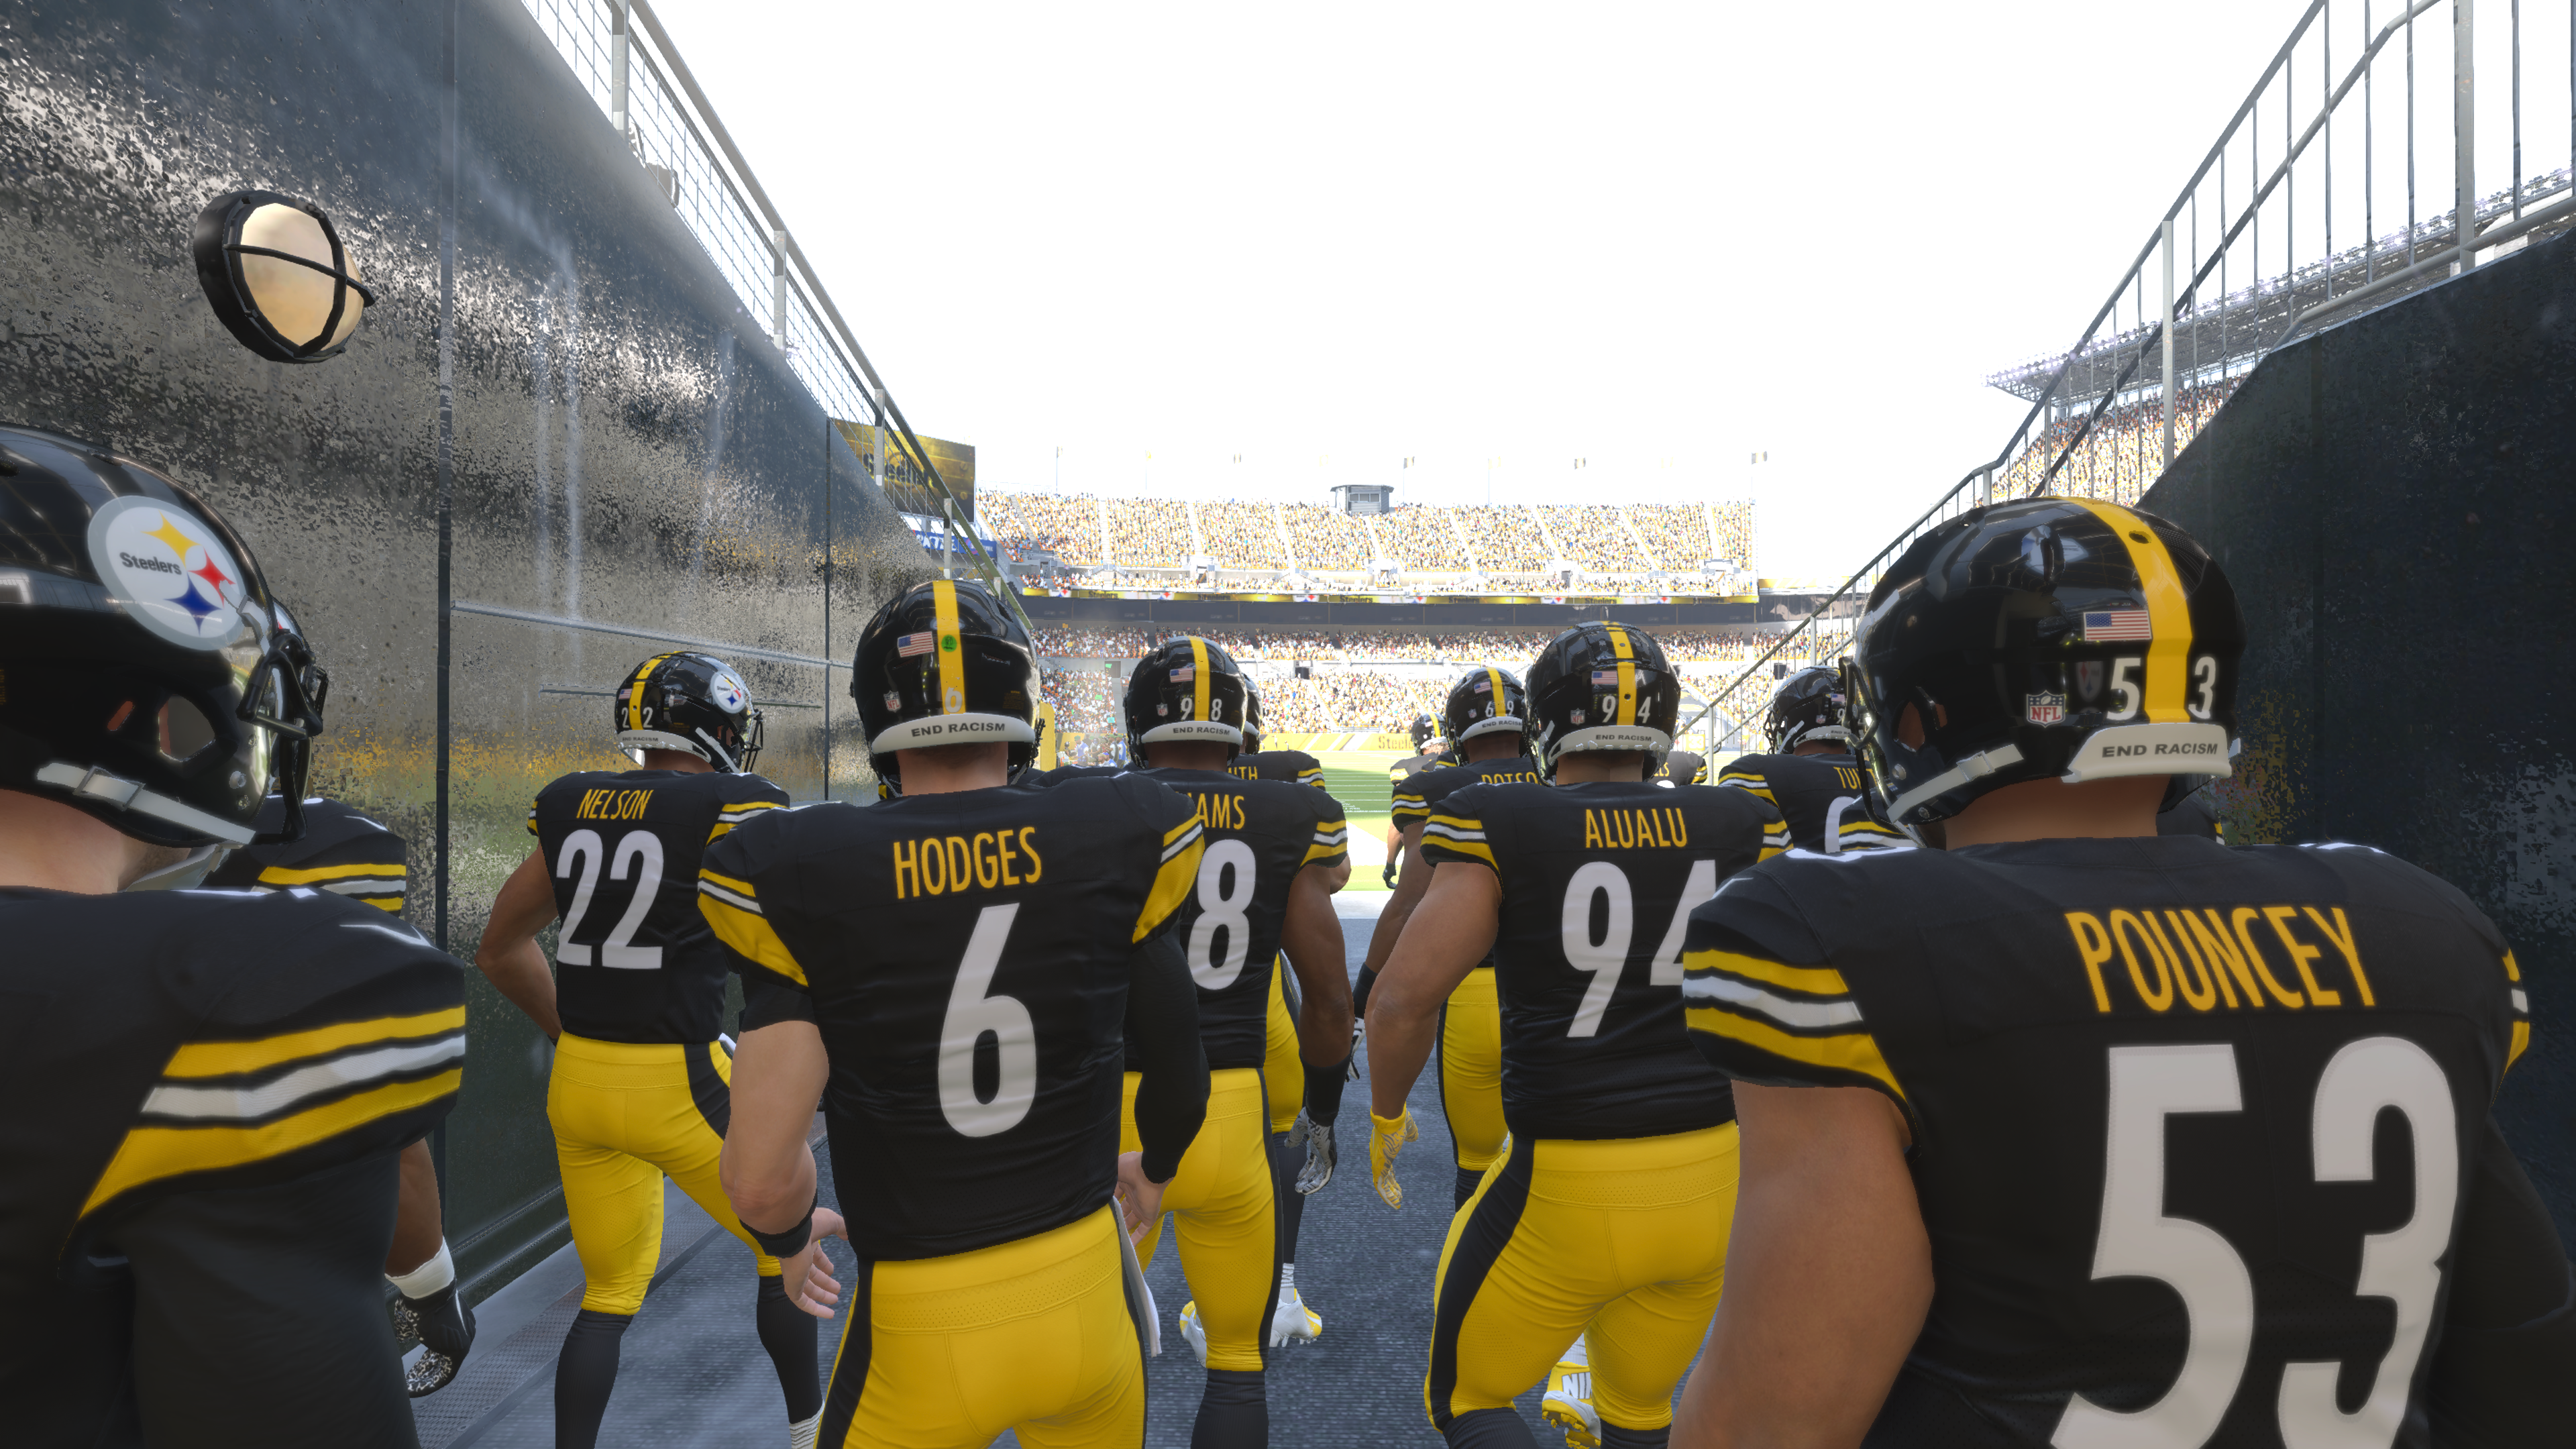 The Steelers coming out of the tunnel in Madden 21